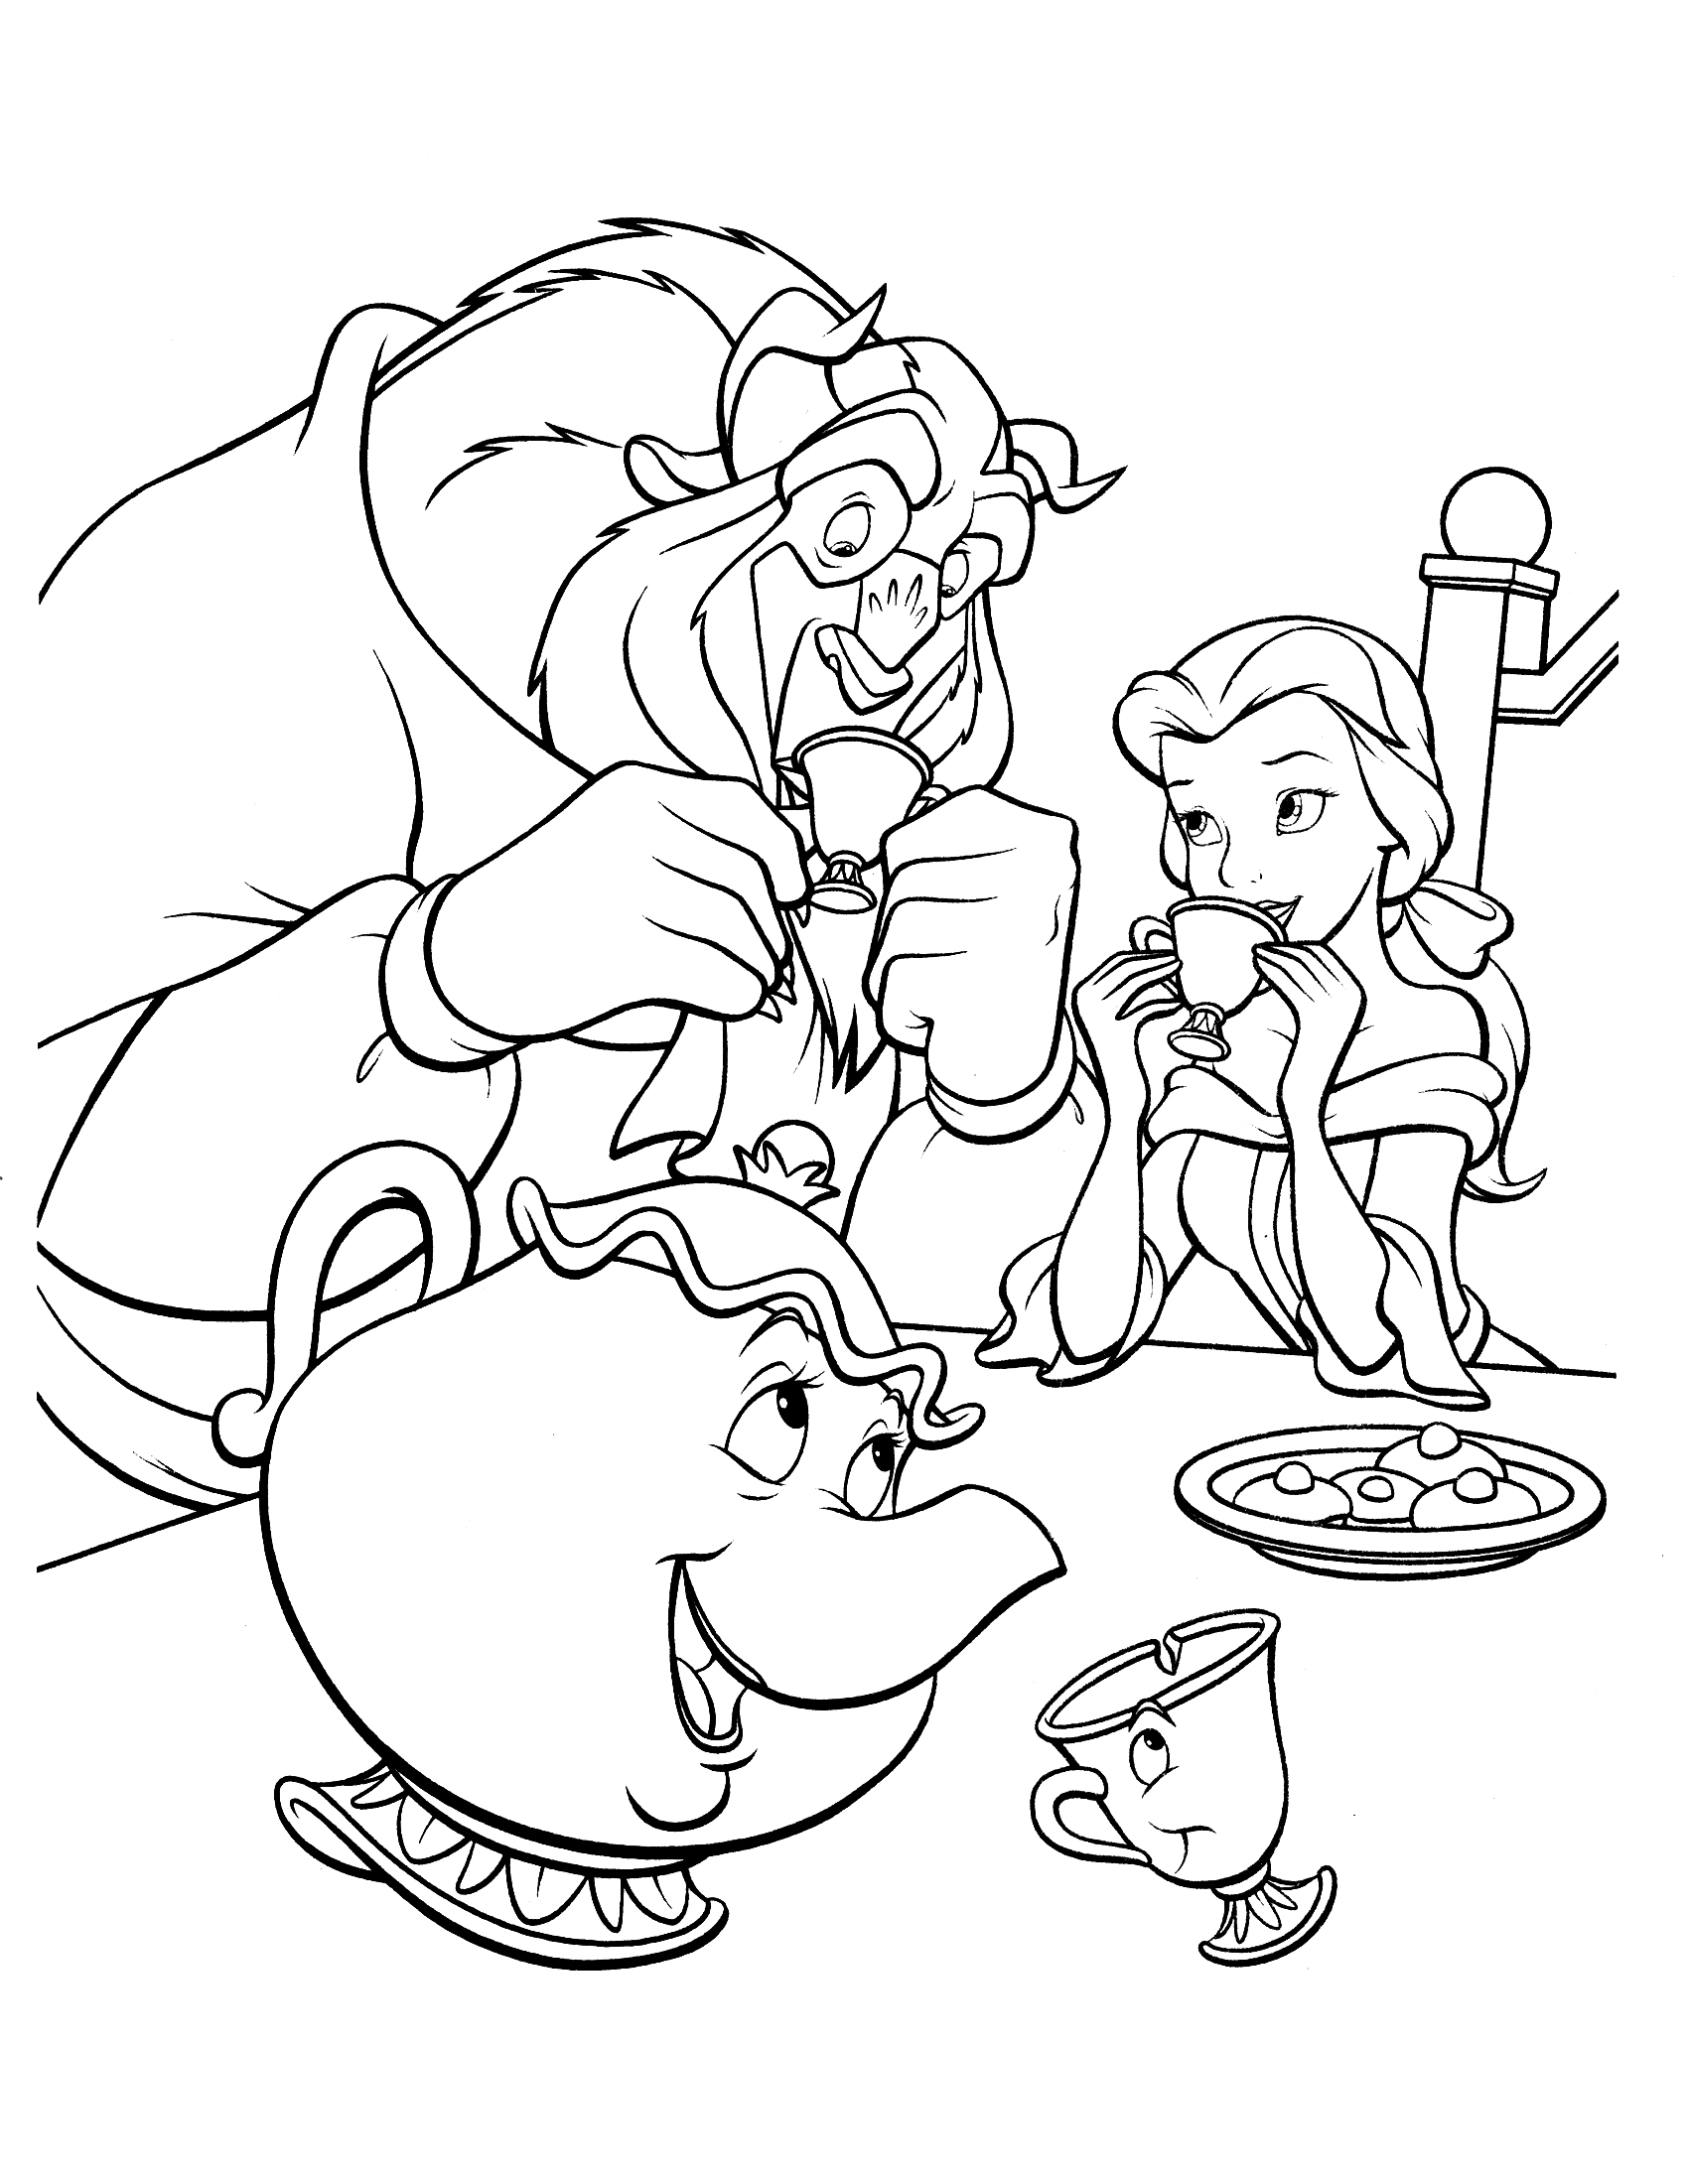 beauty and the beast coloring pages - tale as old as time